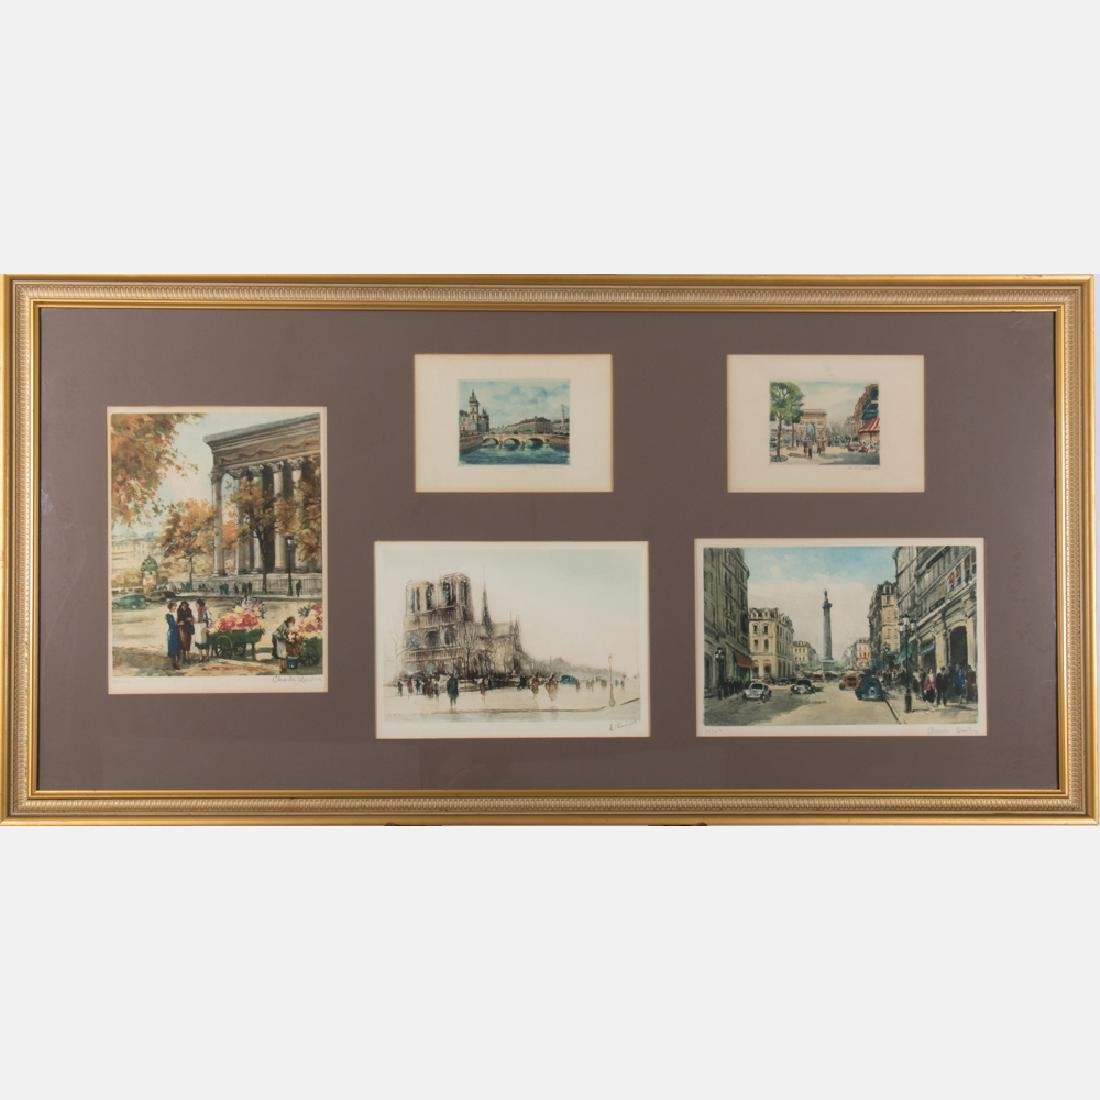 A Group of Engravings Depicting Historic Scenes by